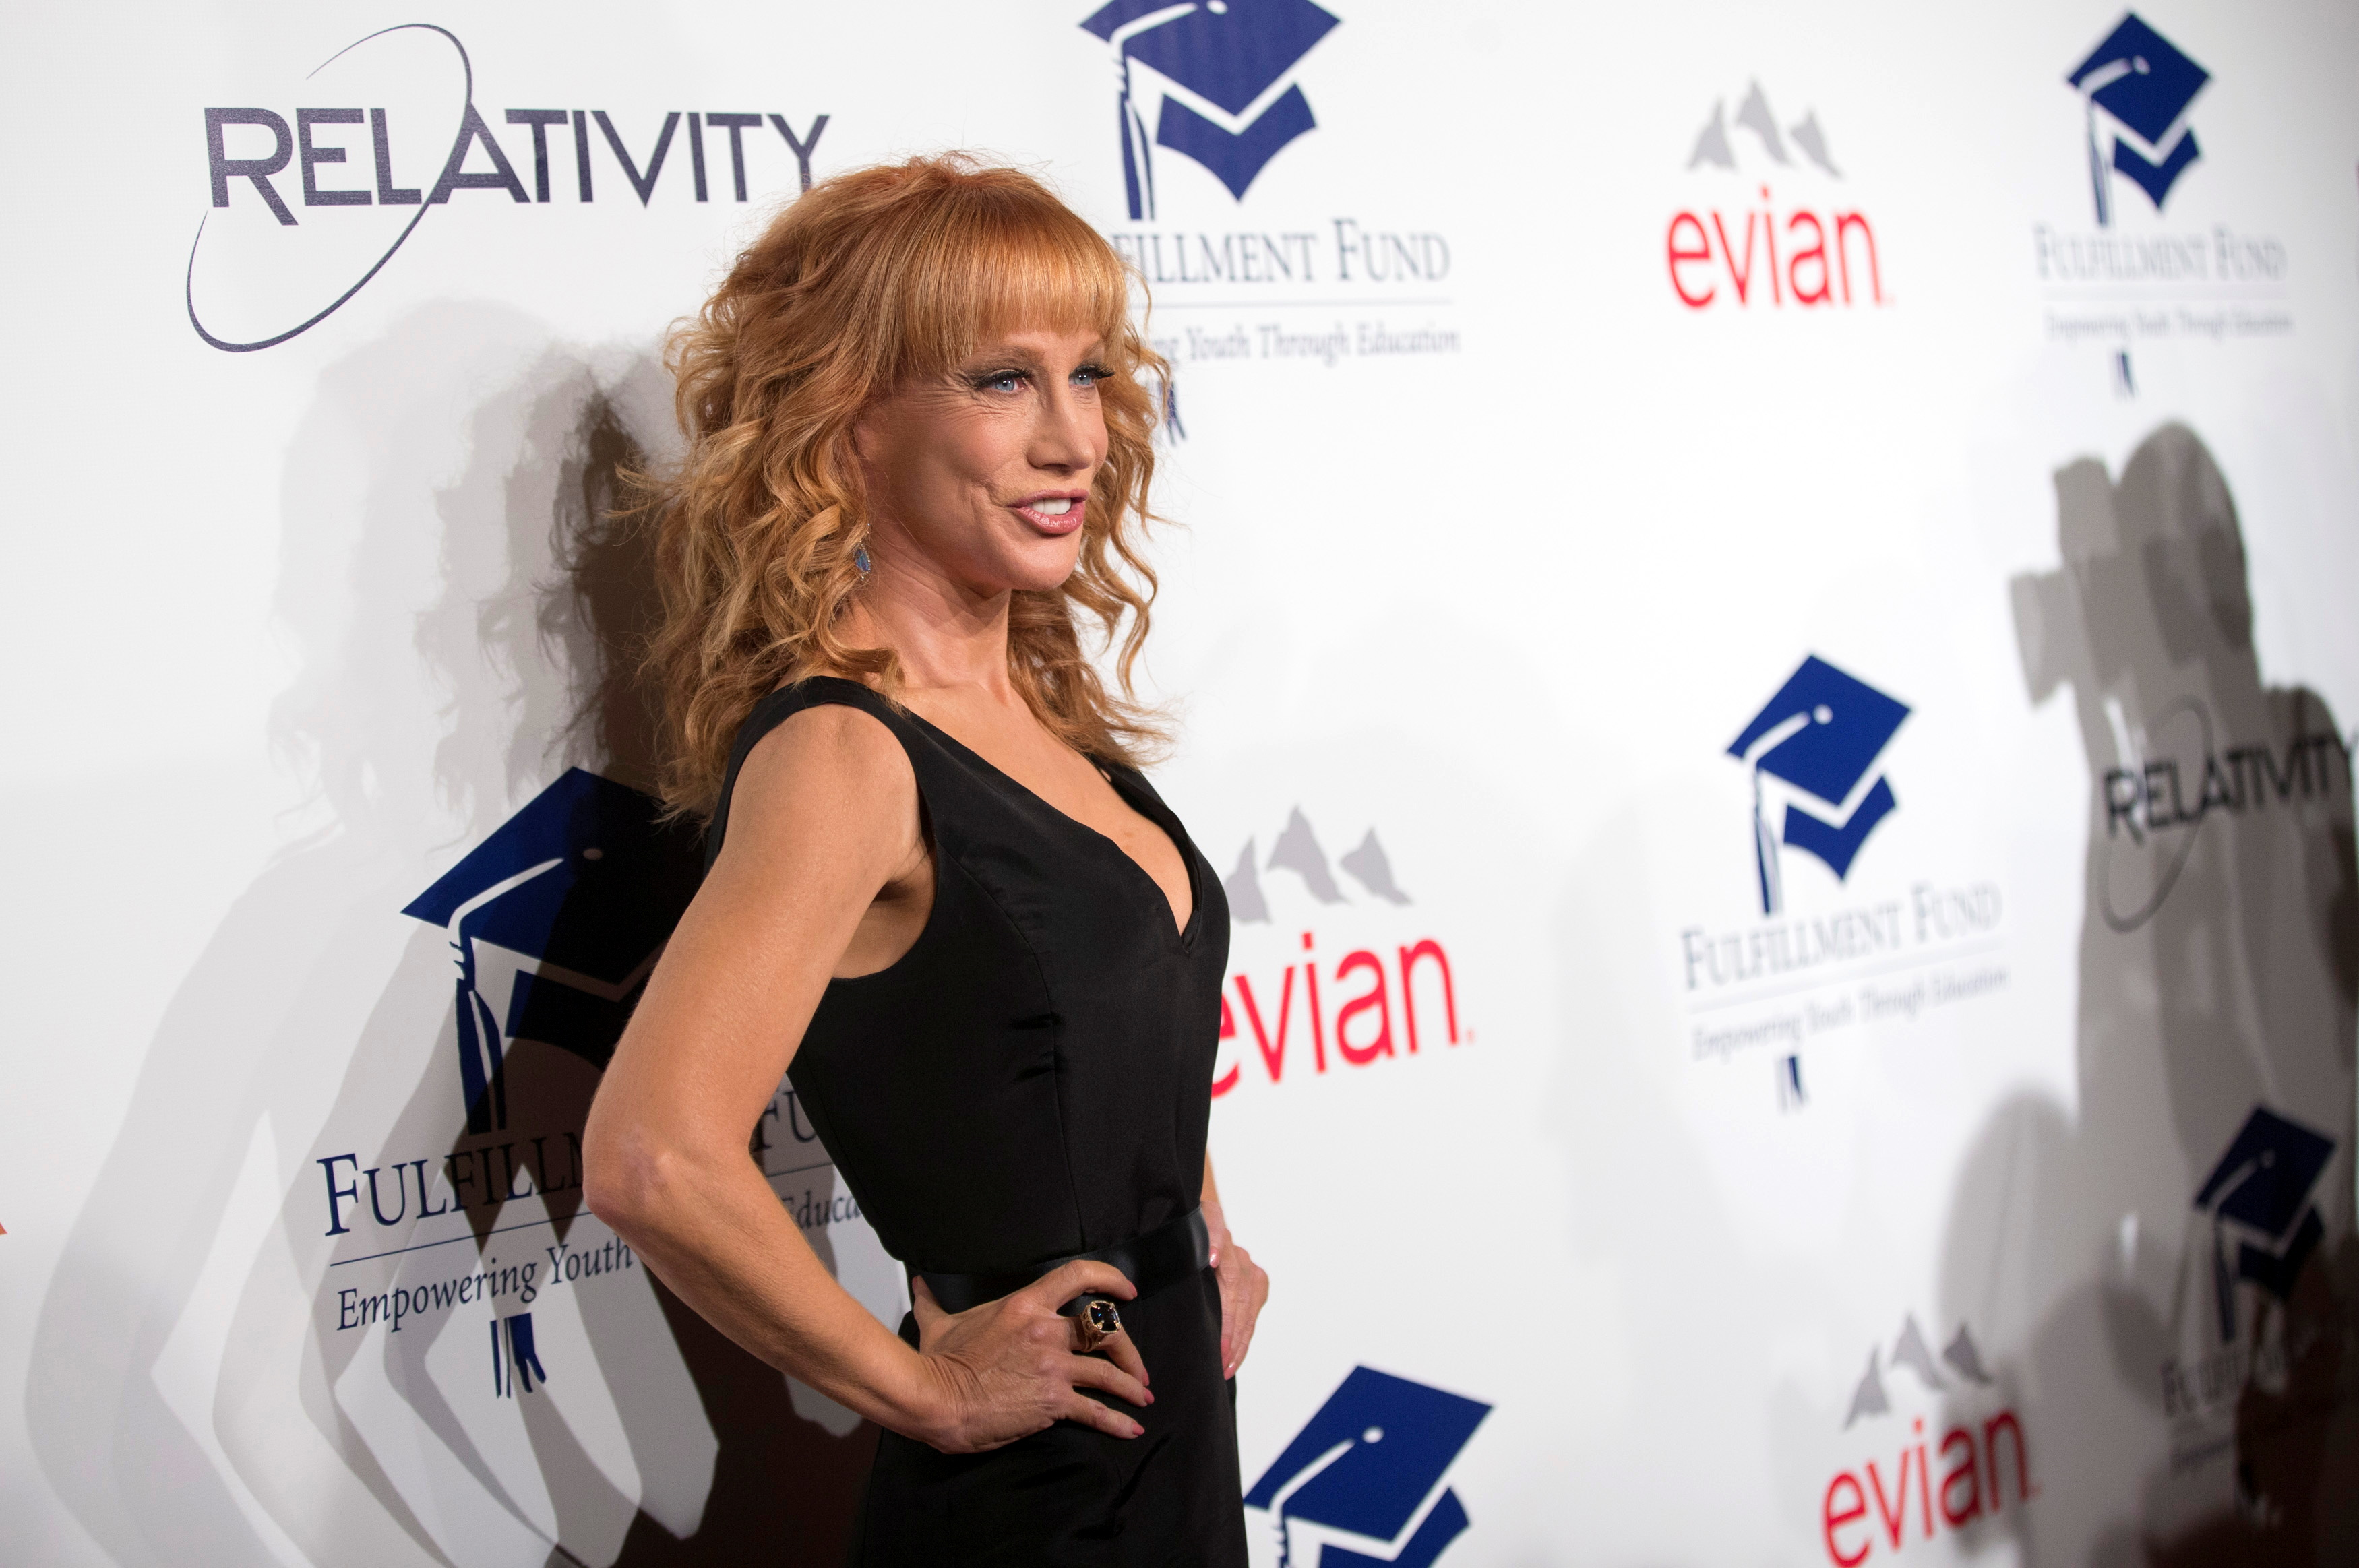 Comedian Kathy Griffin poses at the 20th Annual Fulfillment Fund Stars benefit gala in Beverly Hills, California October 14, 2014. REUTERS/Mario Anzuoni/File Photo